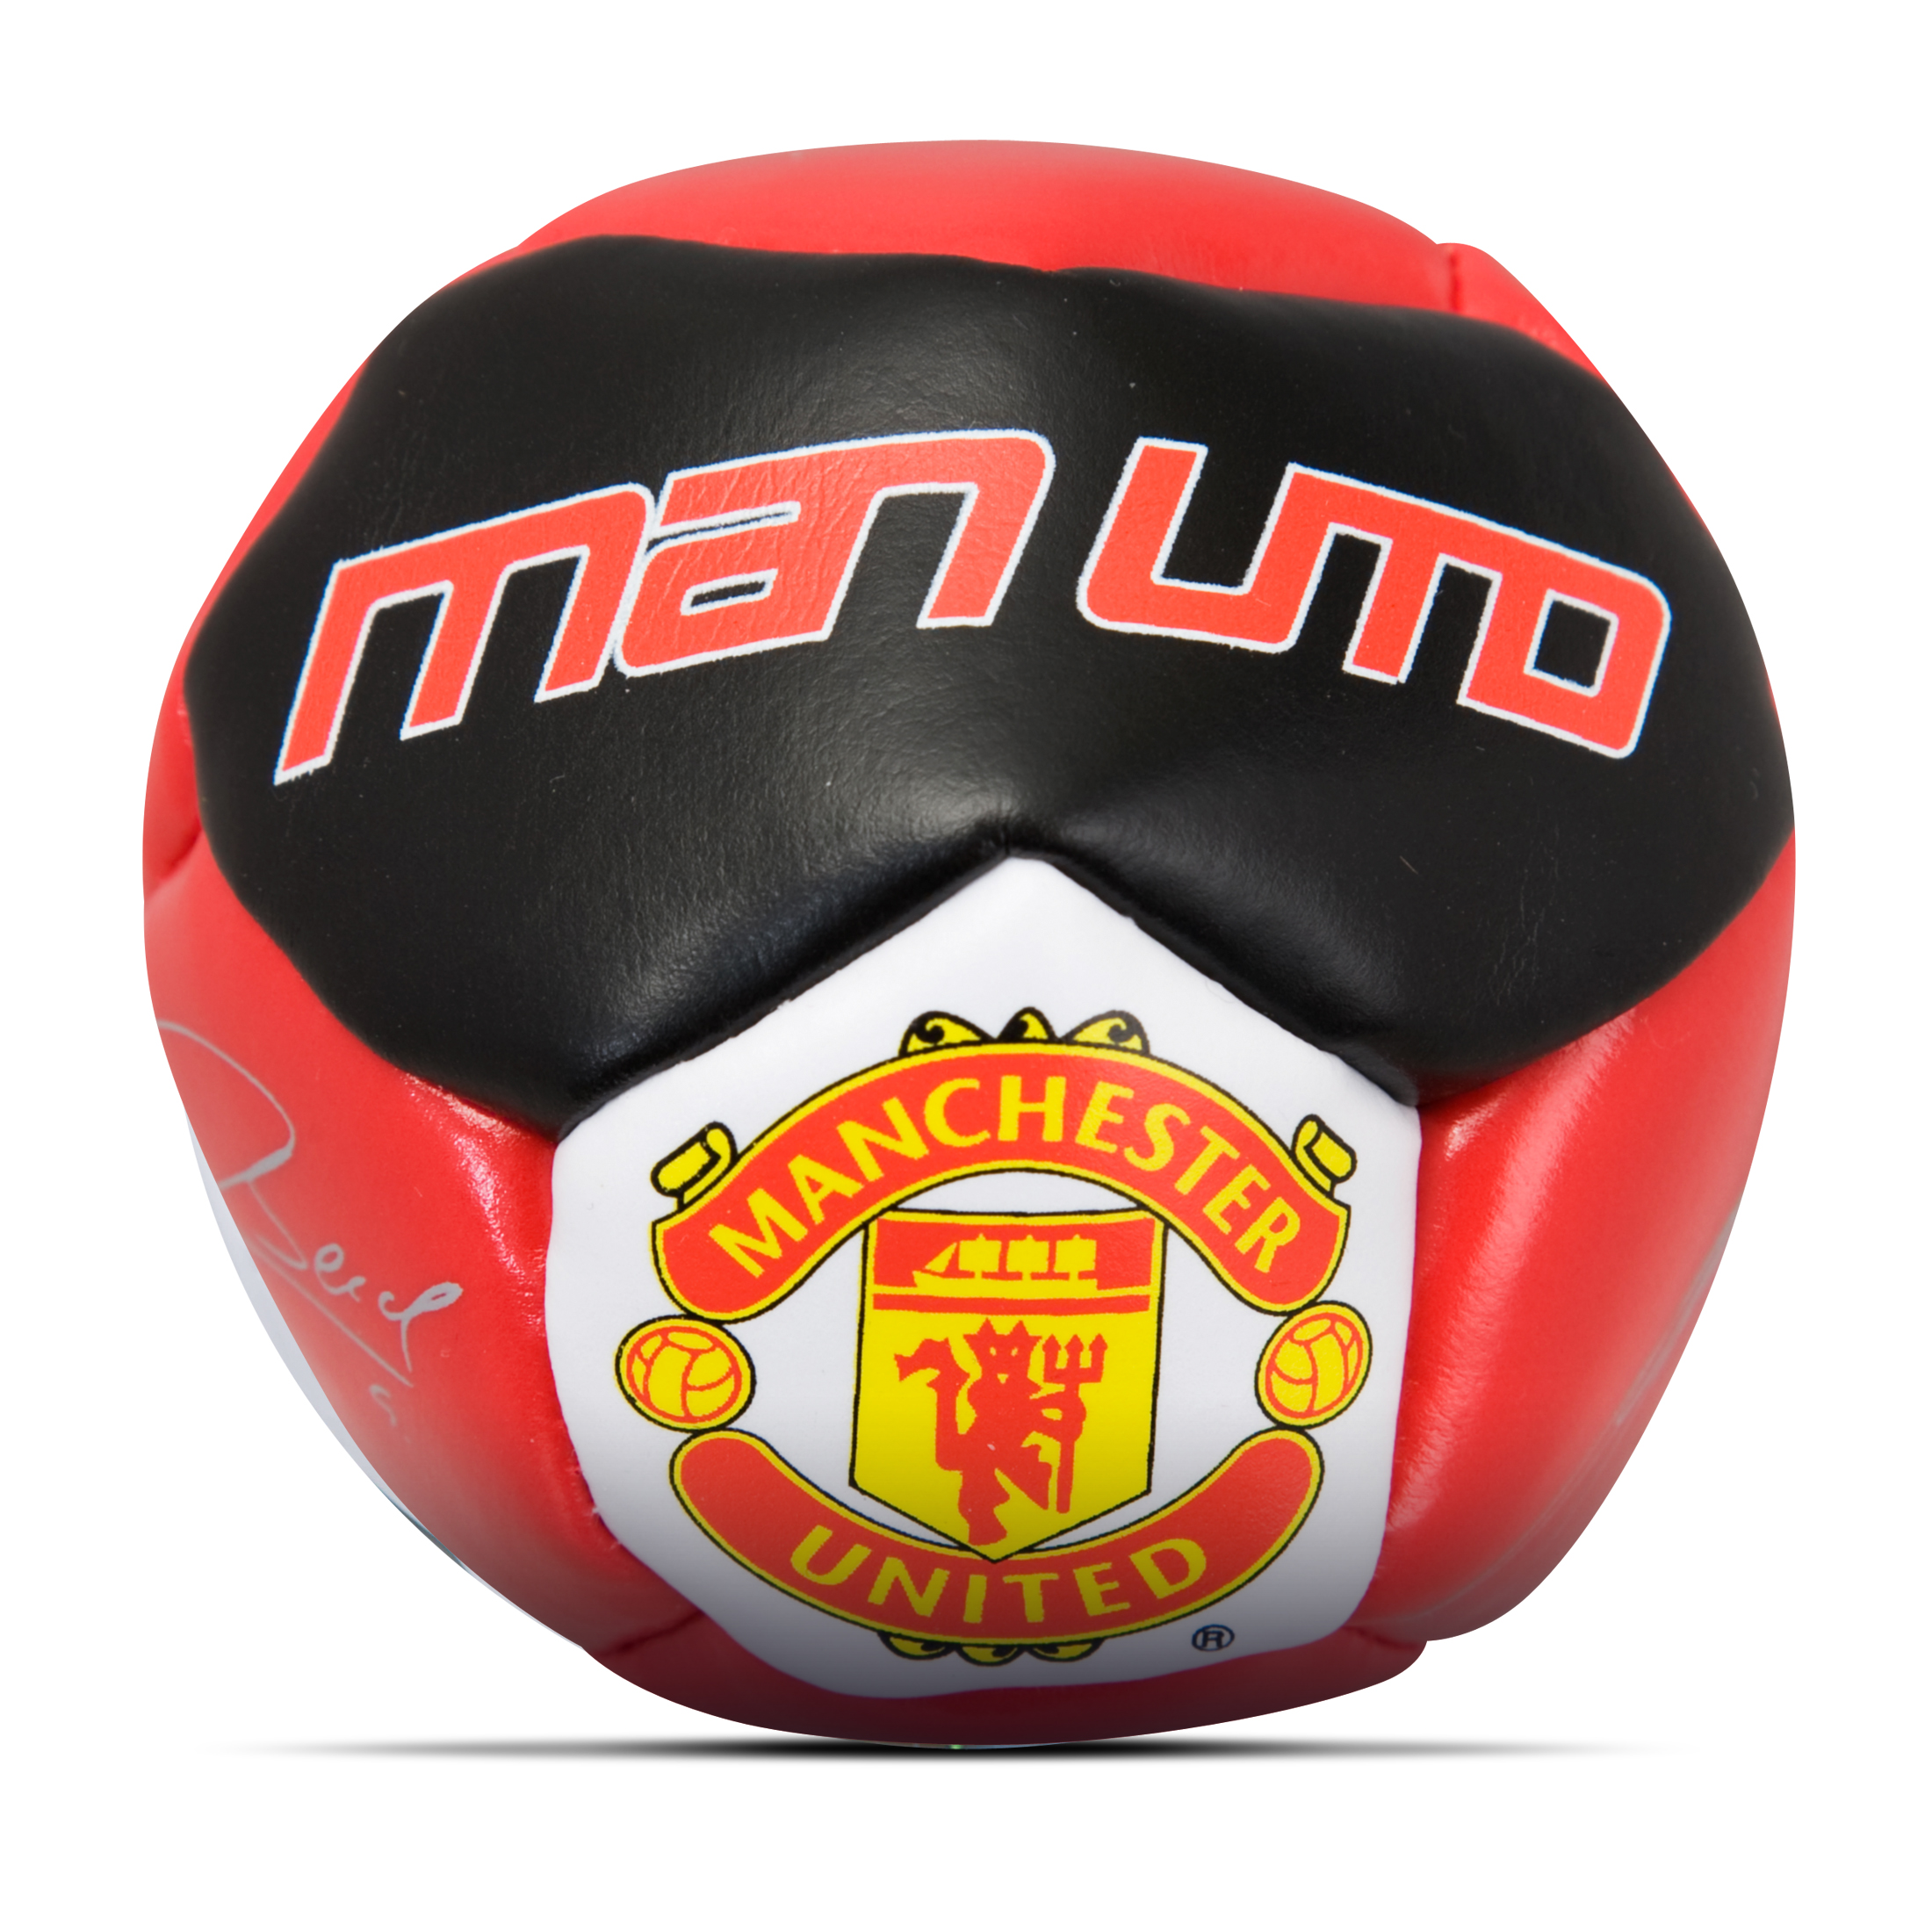 Manchester United Signature Kick and Trick Ball